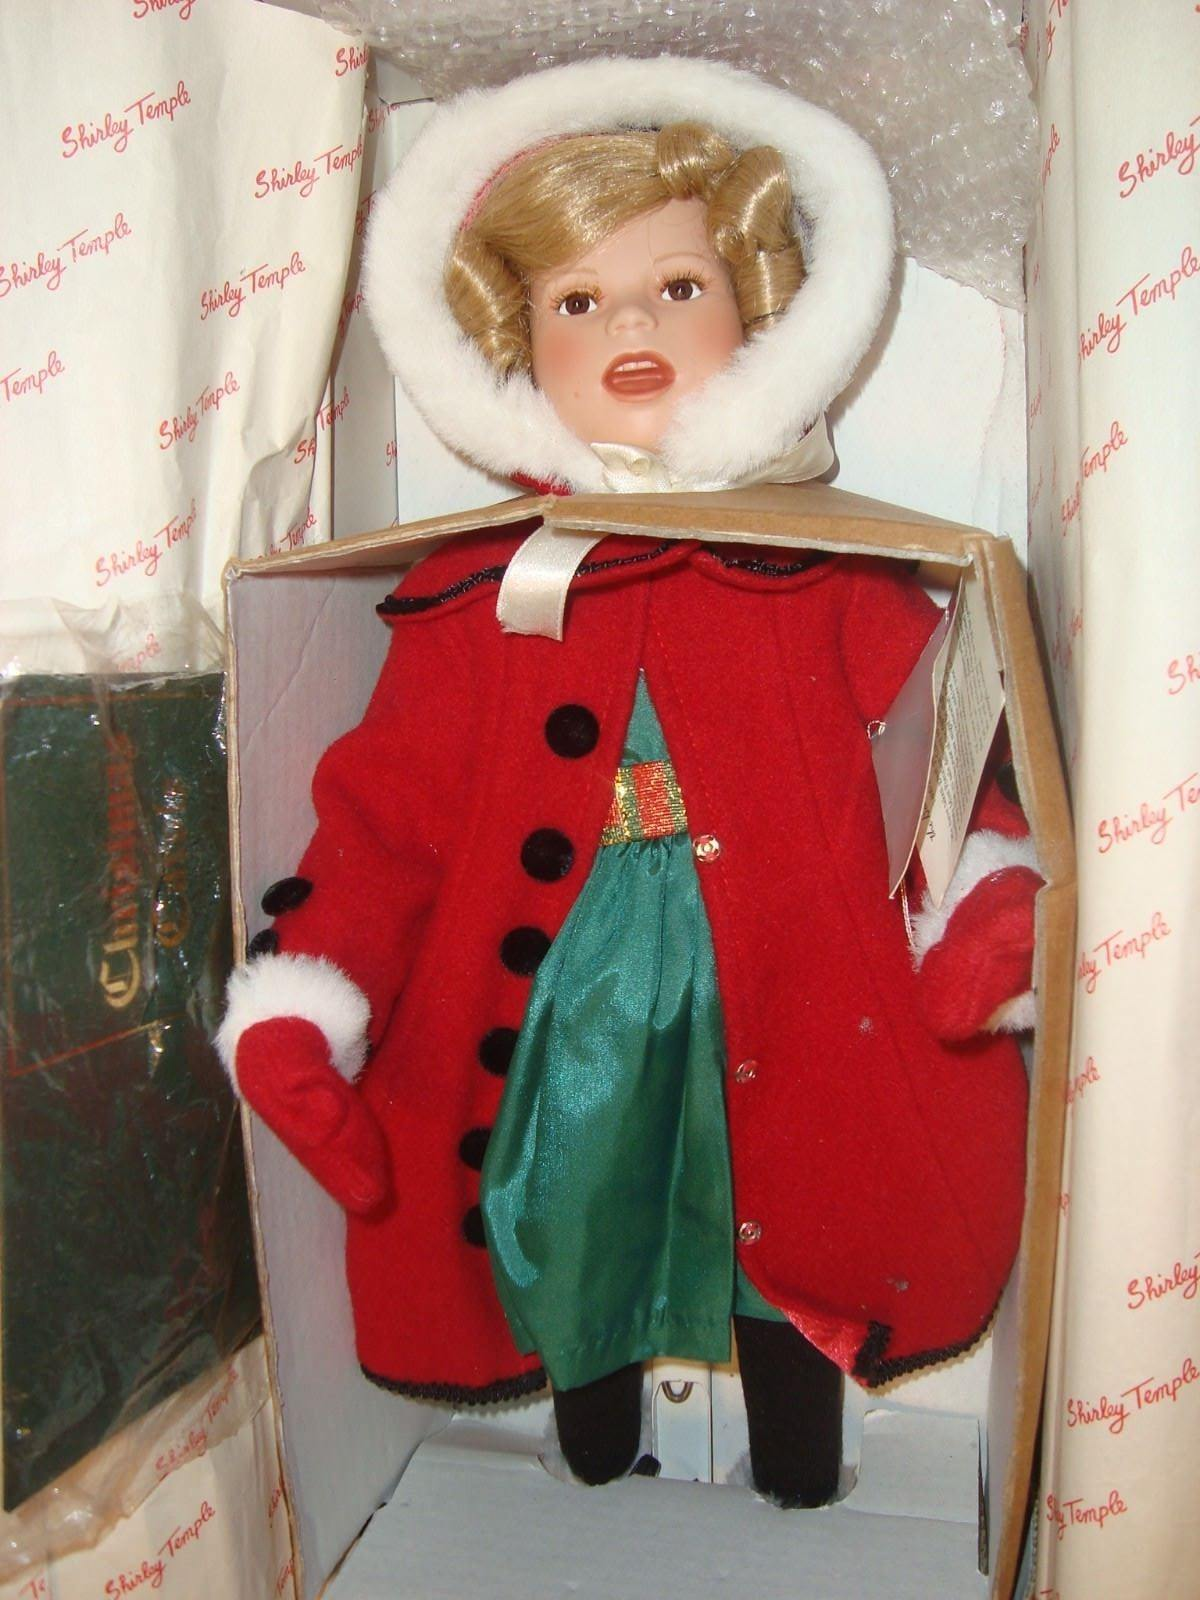 Vintage 1990's Danbury Mint SHIRLEY TEMPLE  Little Caroler  17  Porcelain Doll